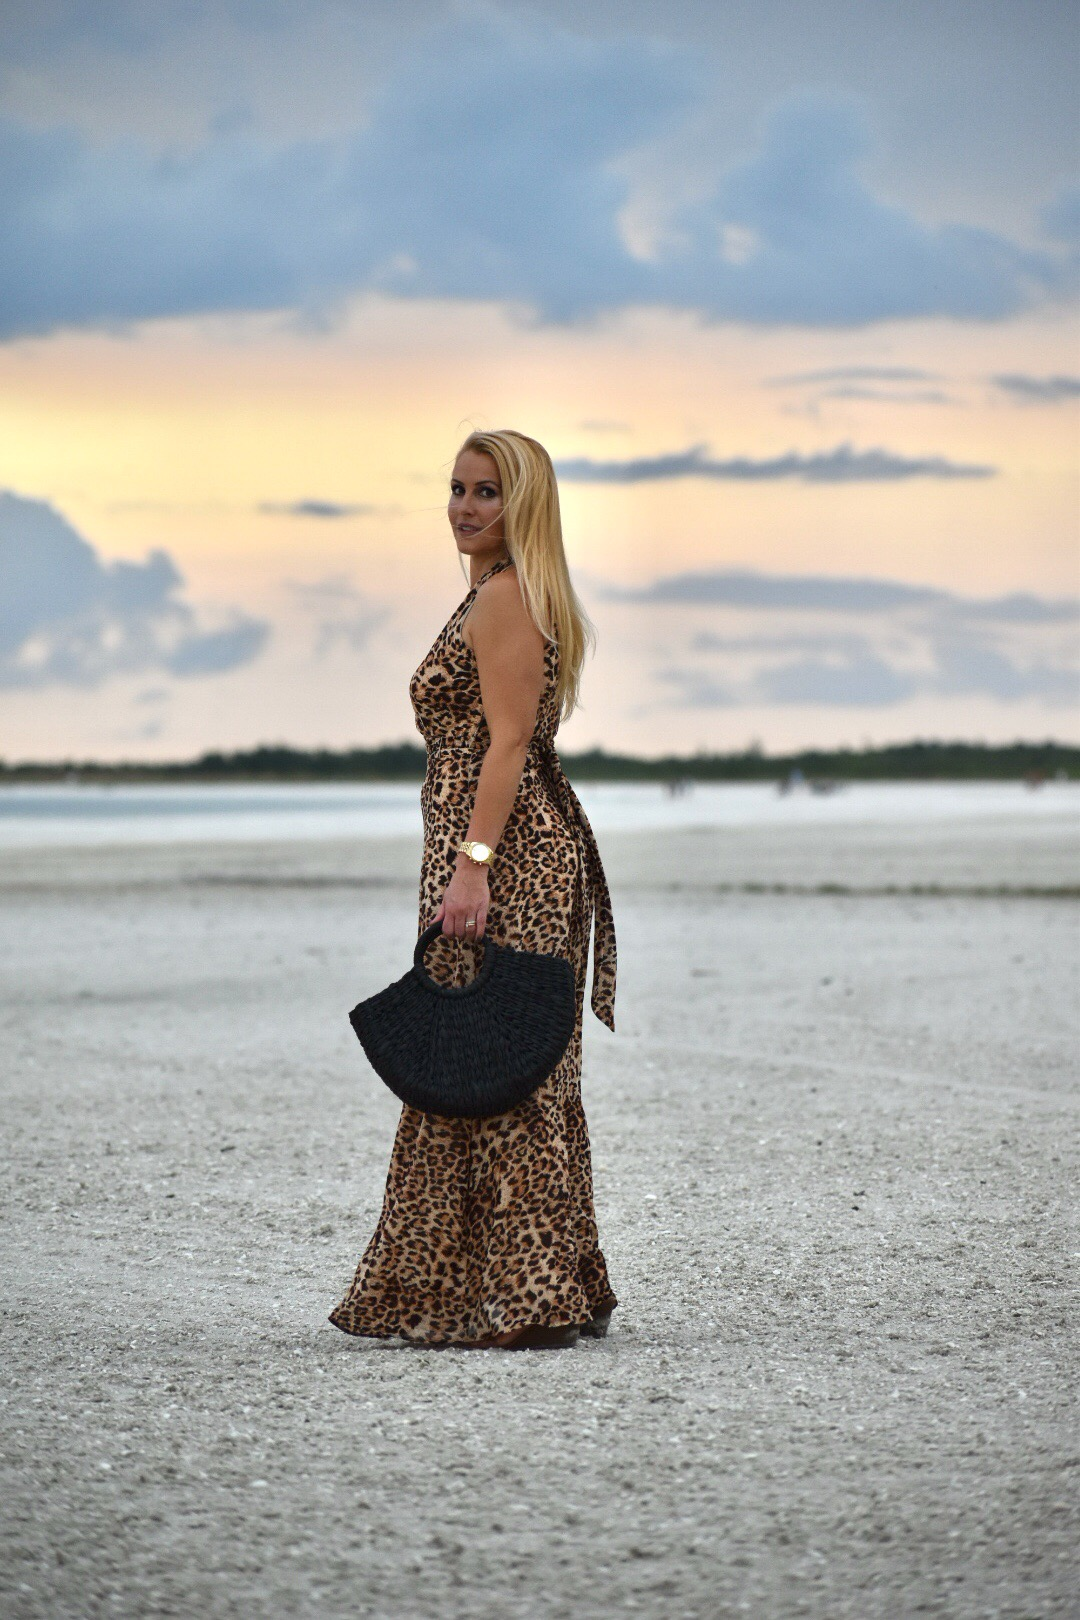 Leopard Dress, Chetta B Leopard Print Dress, Gorjana Jewelry and Black Straw Tote in Marco Island Florida